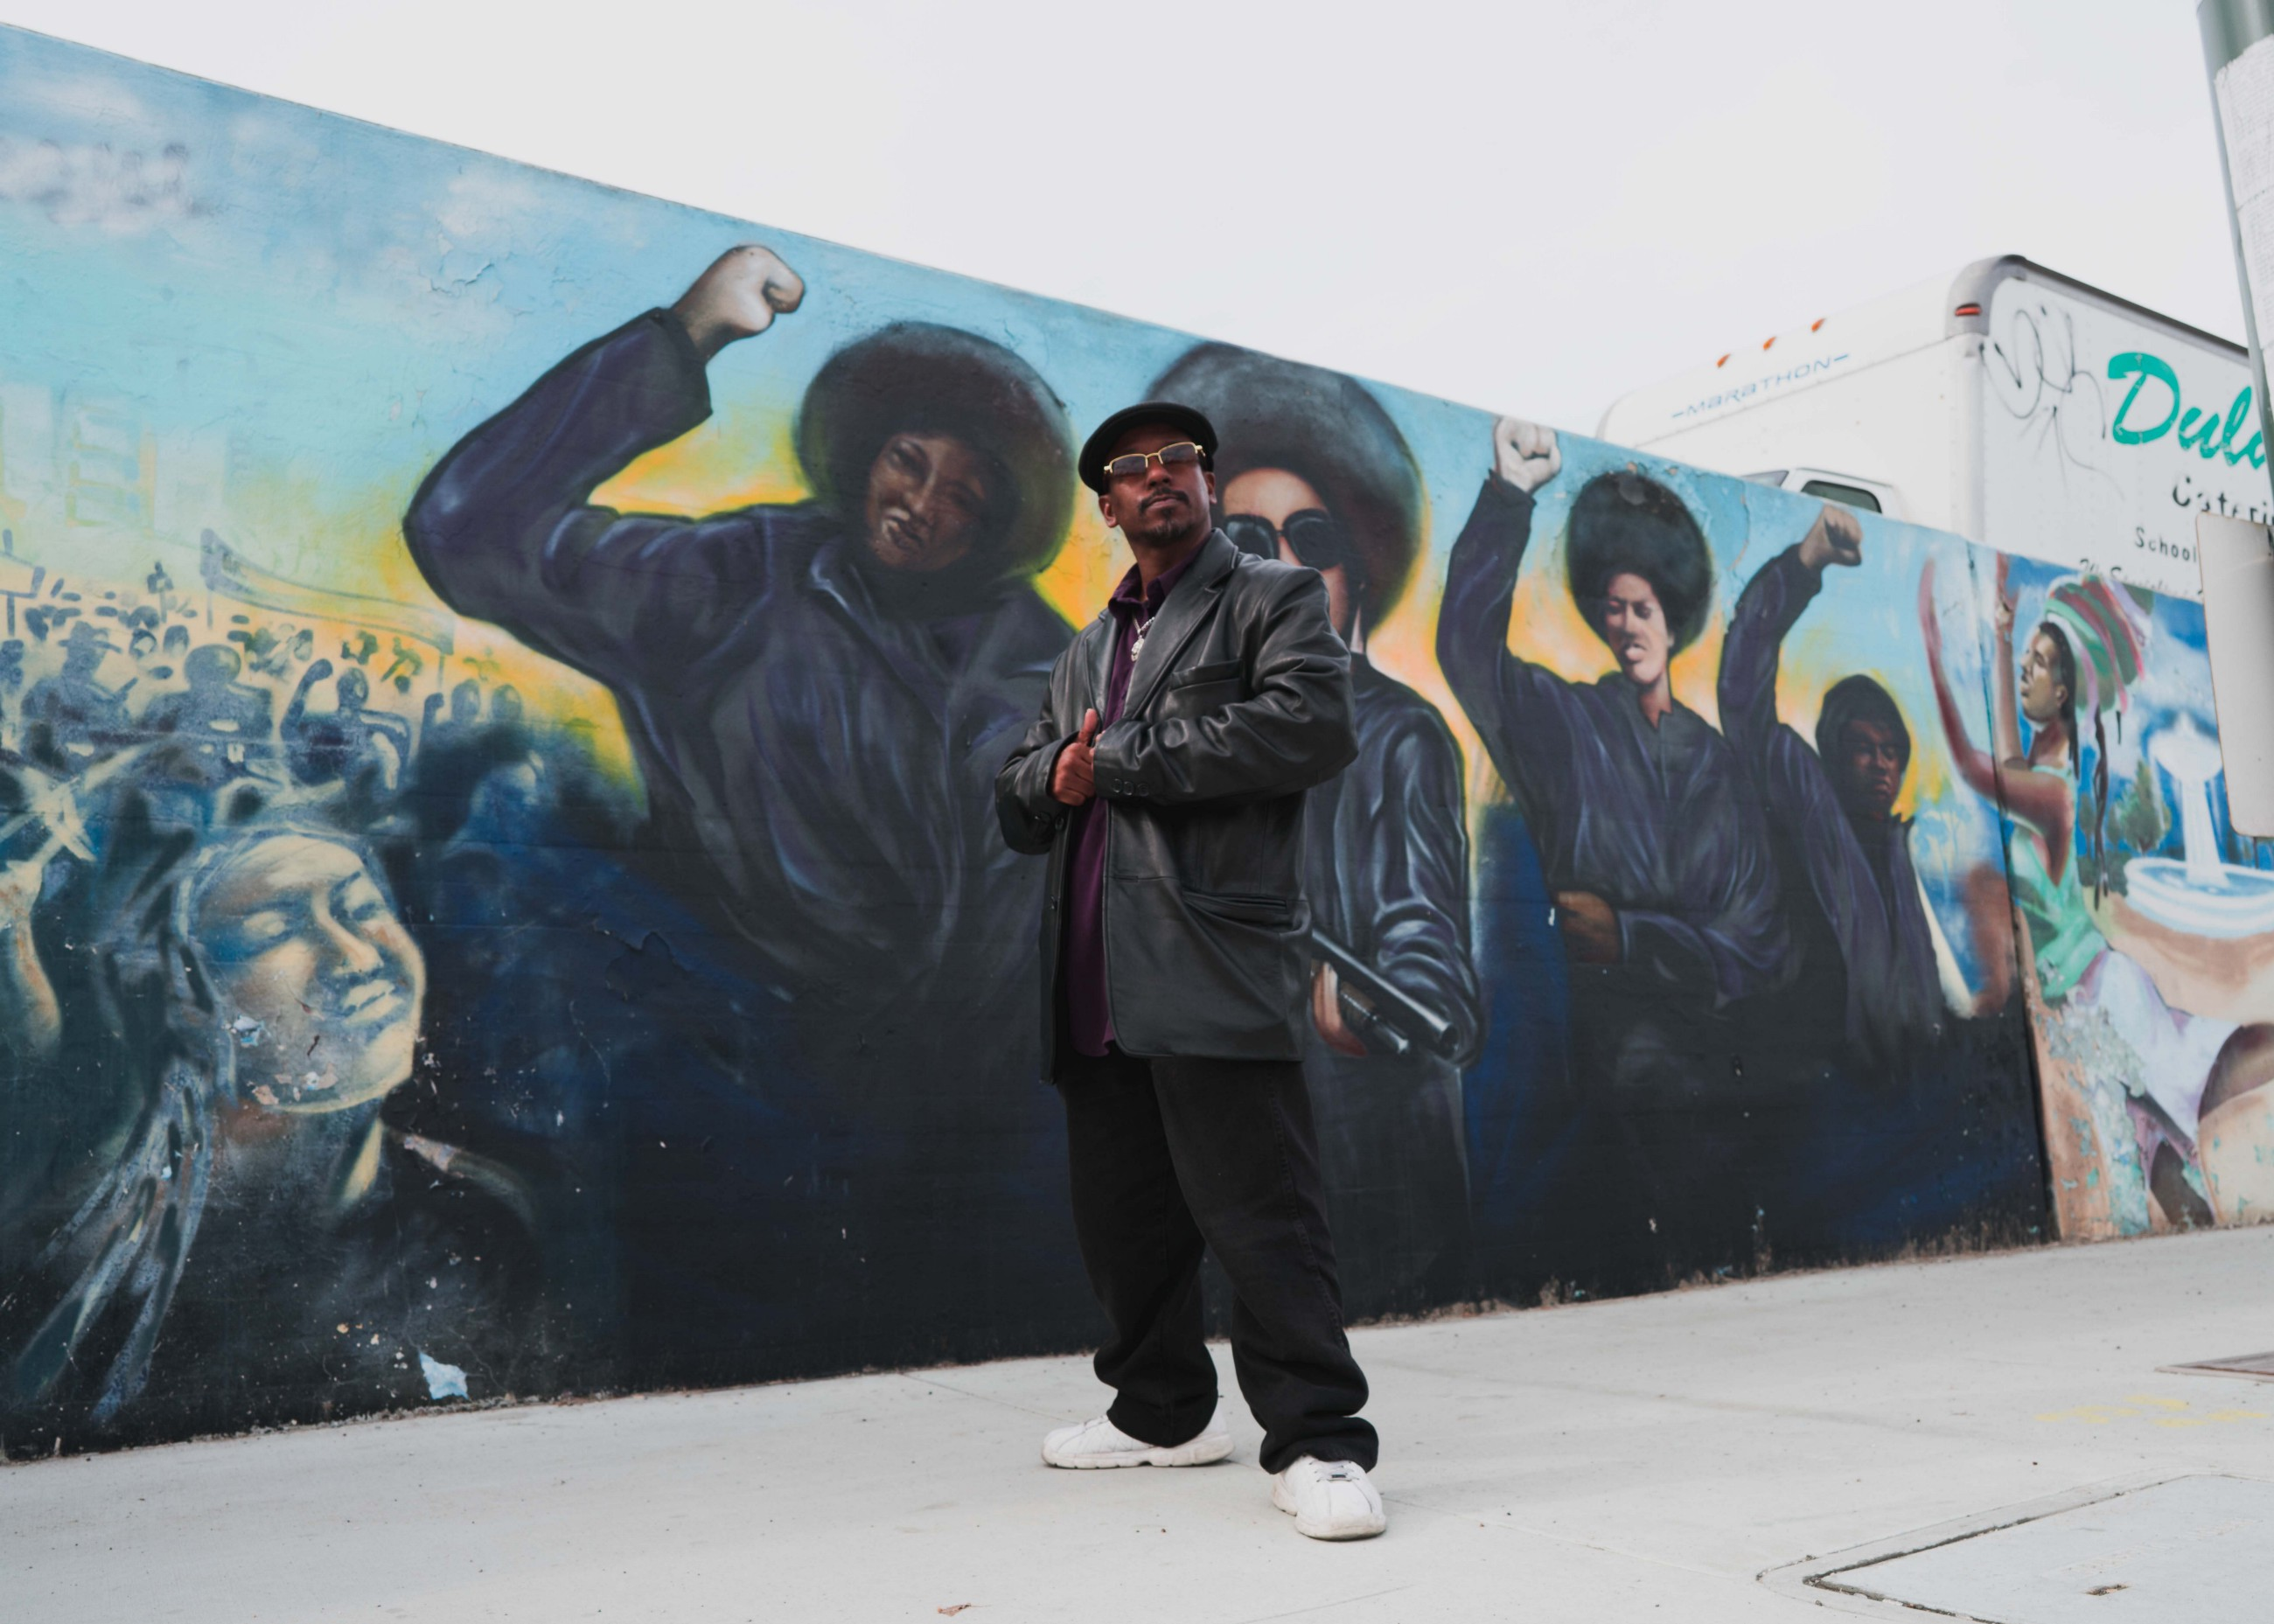 Artist of black panther mural speaks on significance of black art to south central community